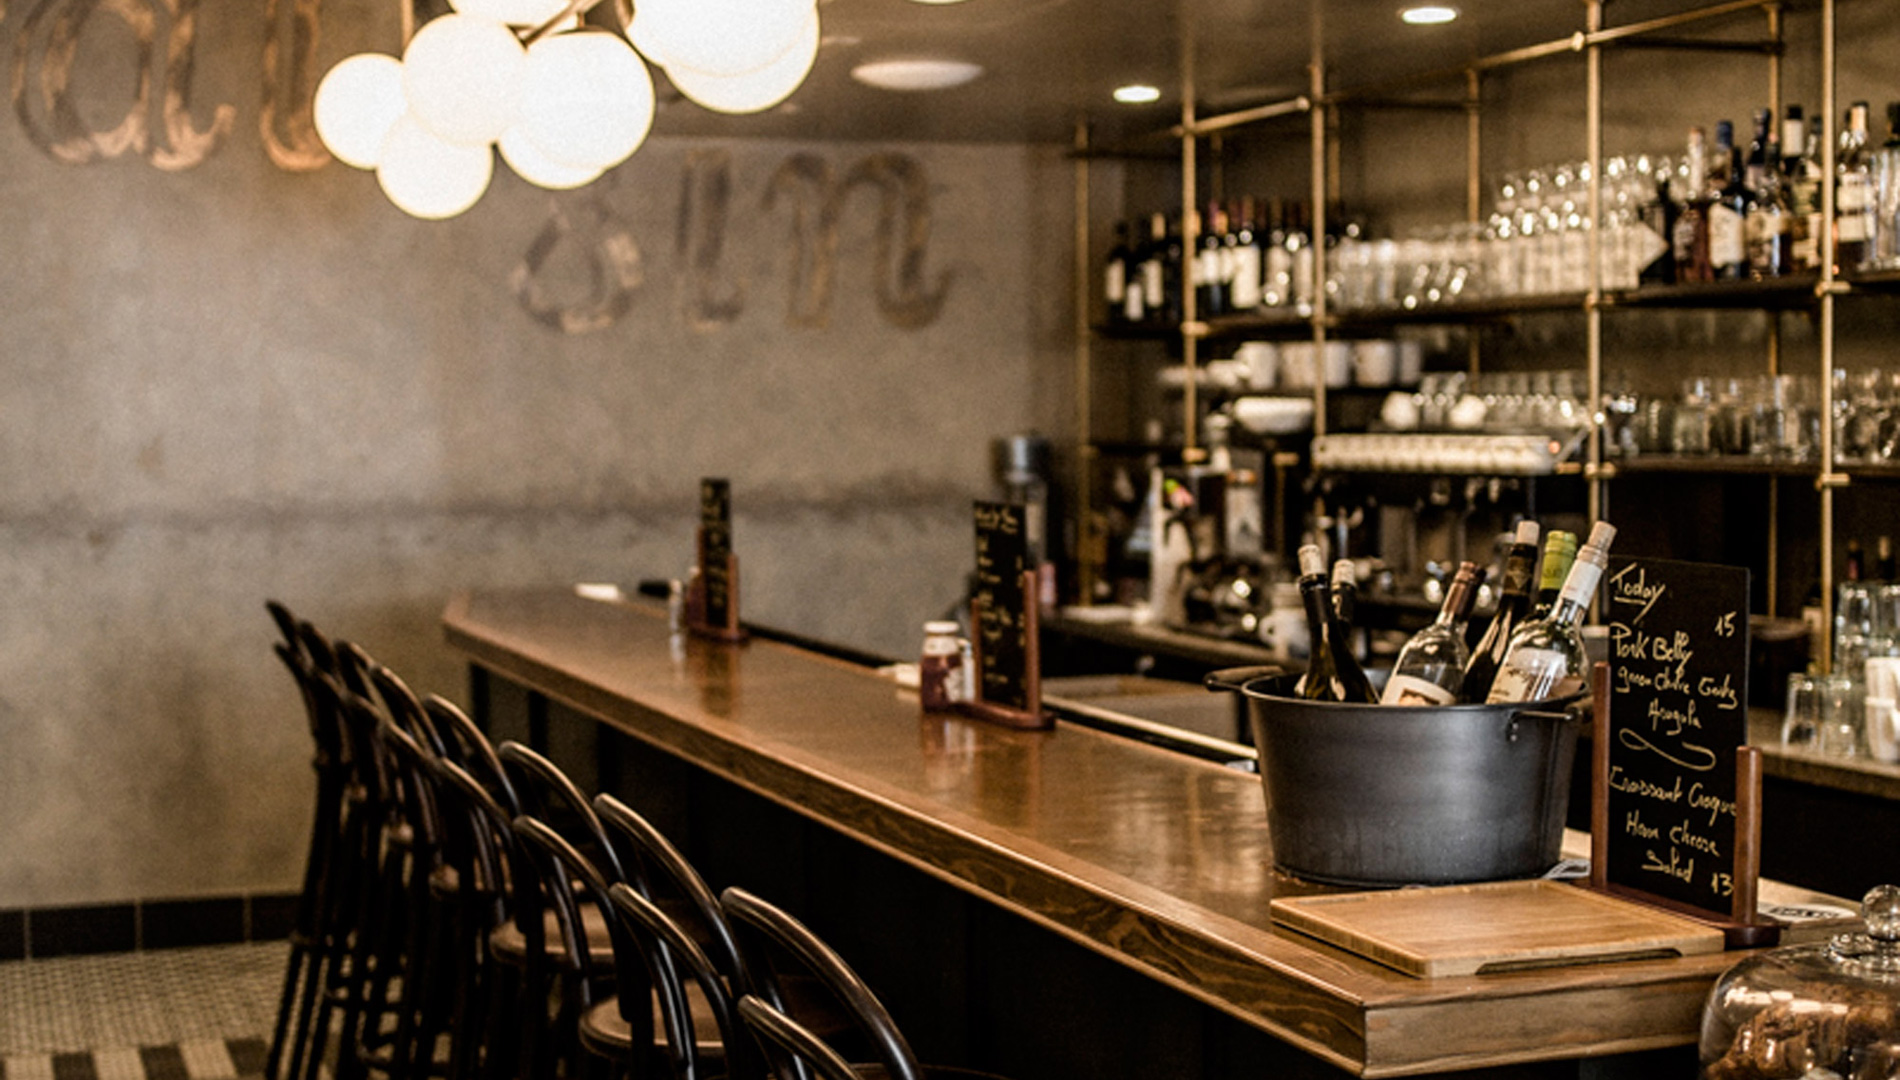 Image gallery wine bar - Image of bar ...